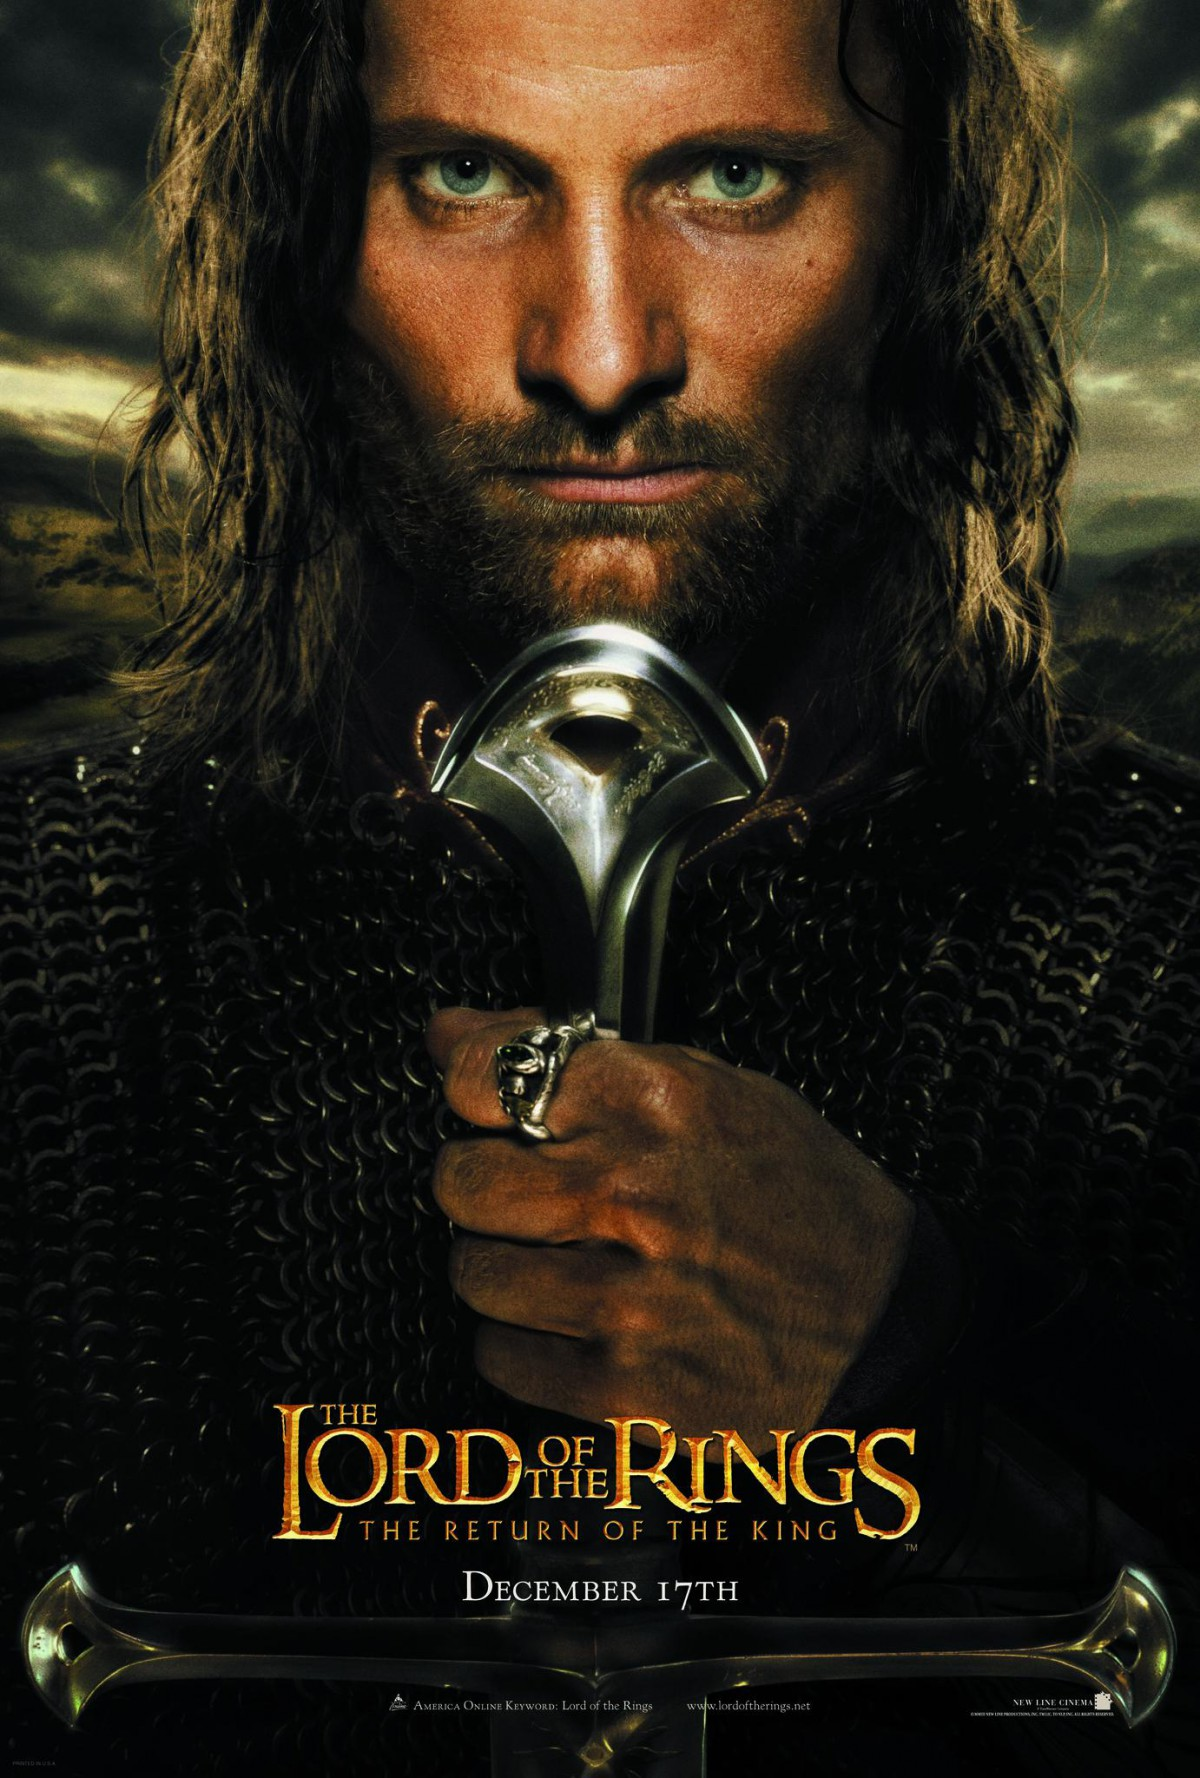 74. Lord of the Rings - Return of The King (2003)